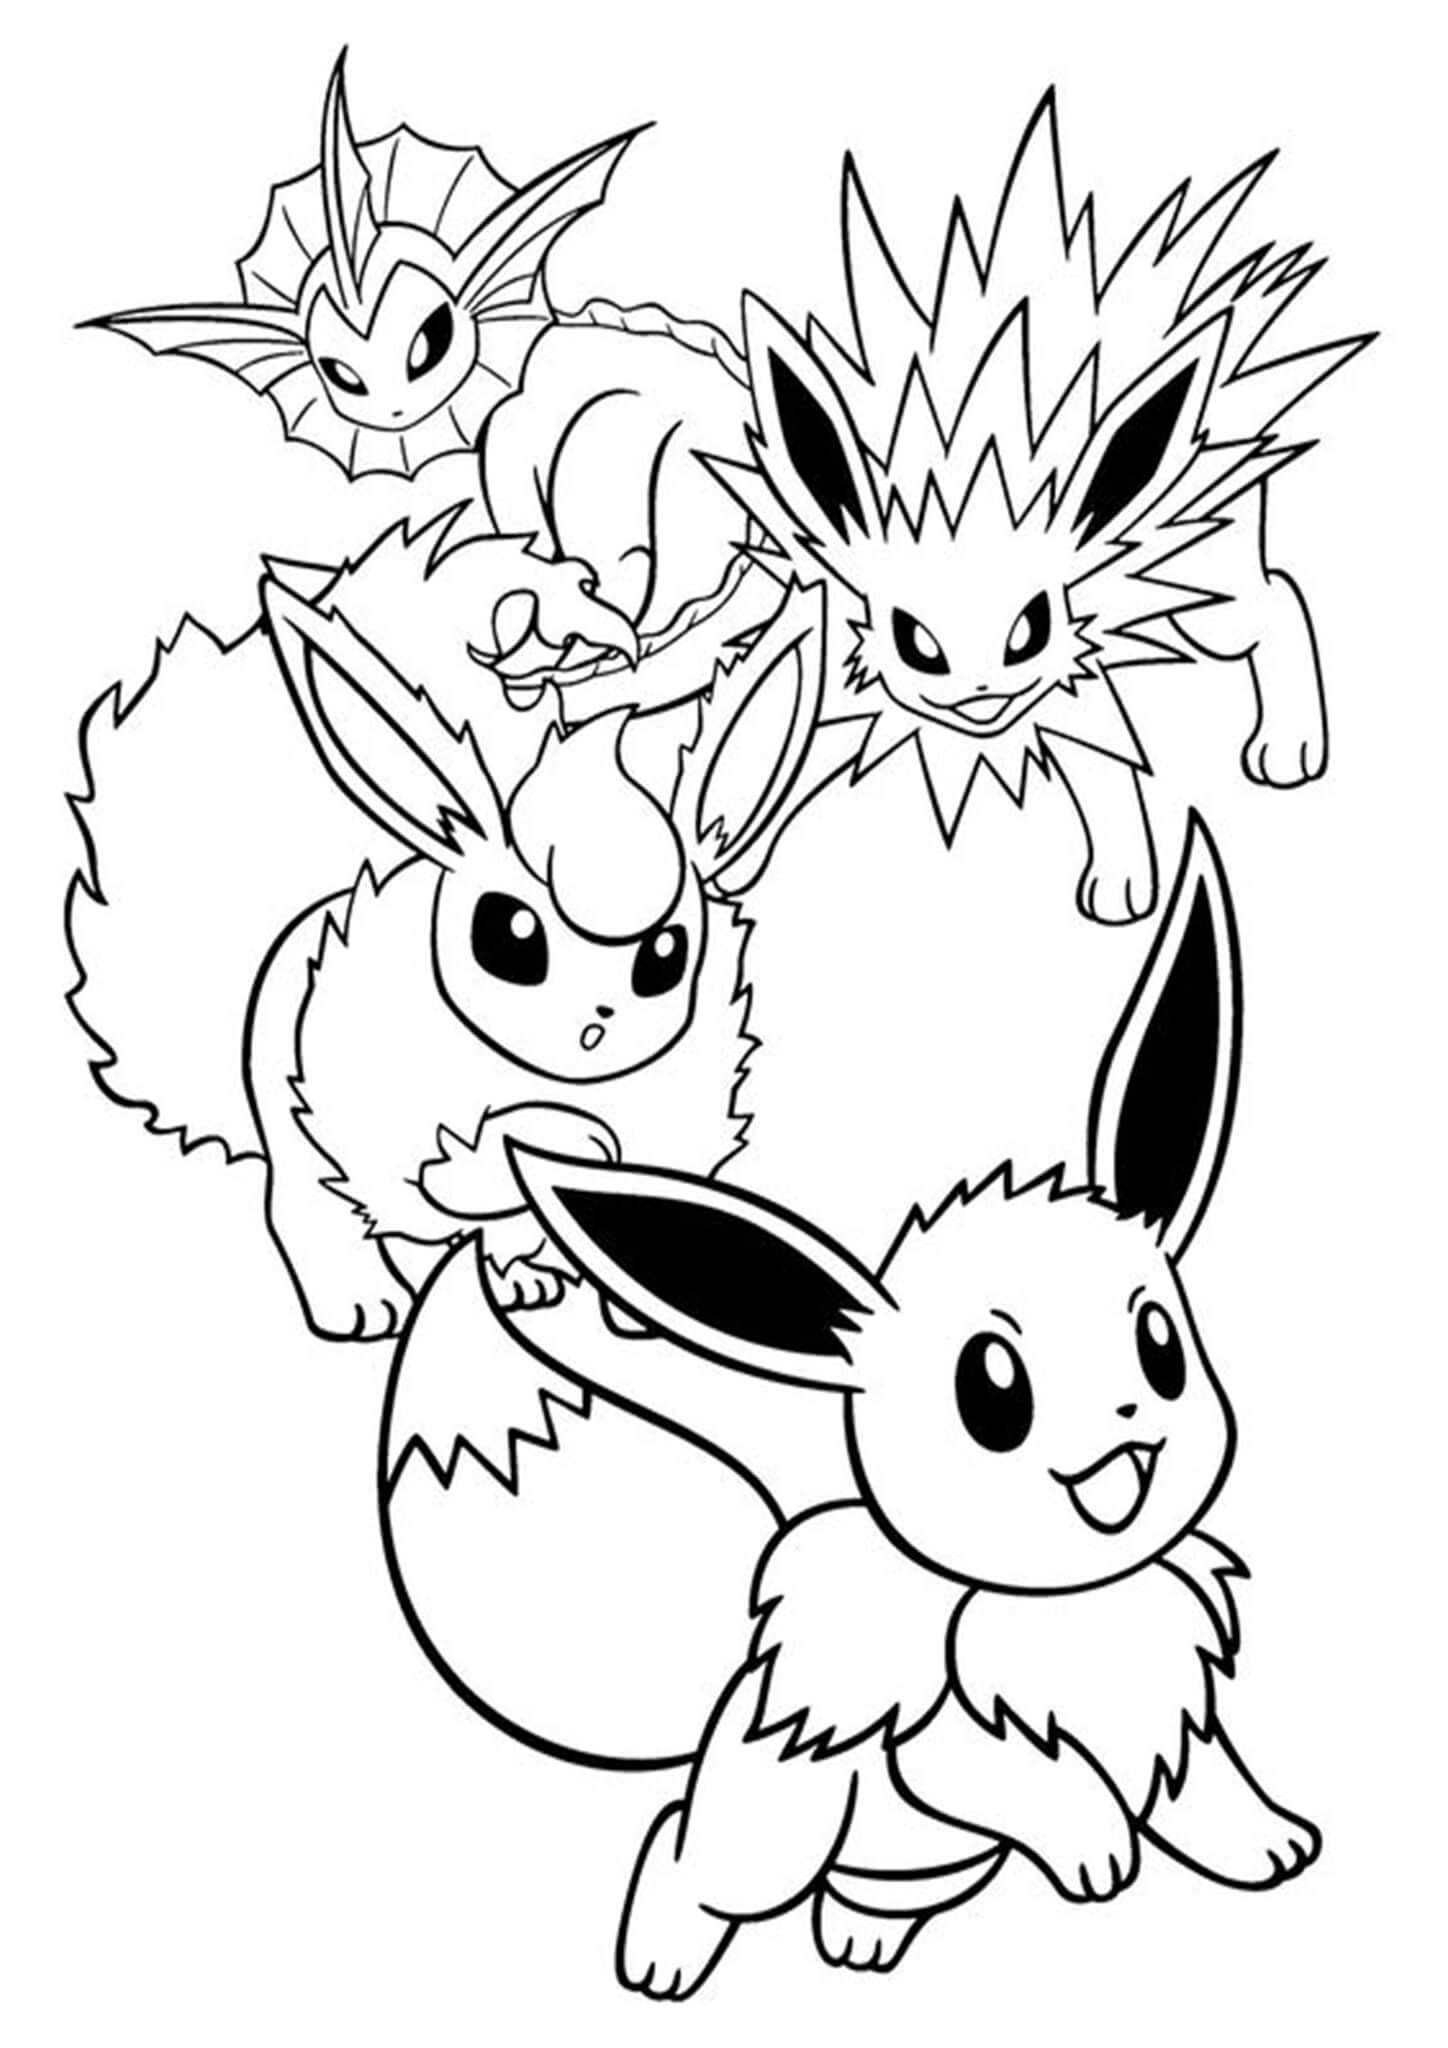 Christmas Pokemon Coloring Pages New Top 93 Free Printable Pokemon Coloring Pages Line Fall Coloring Pages Pokemon Coloring Sheets Free Coloring Pages